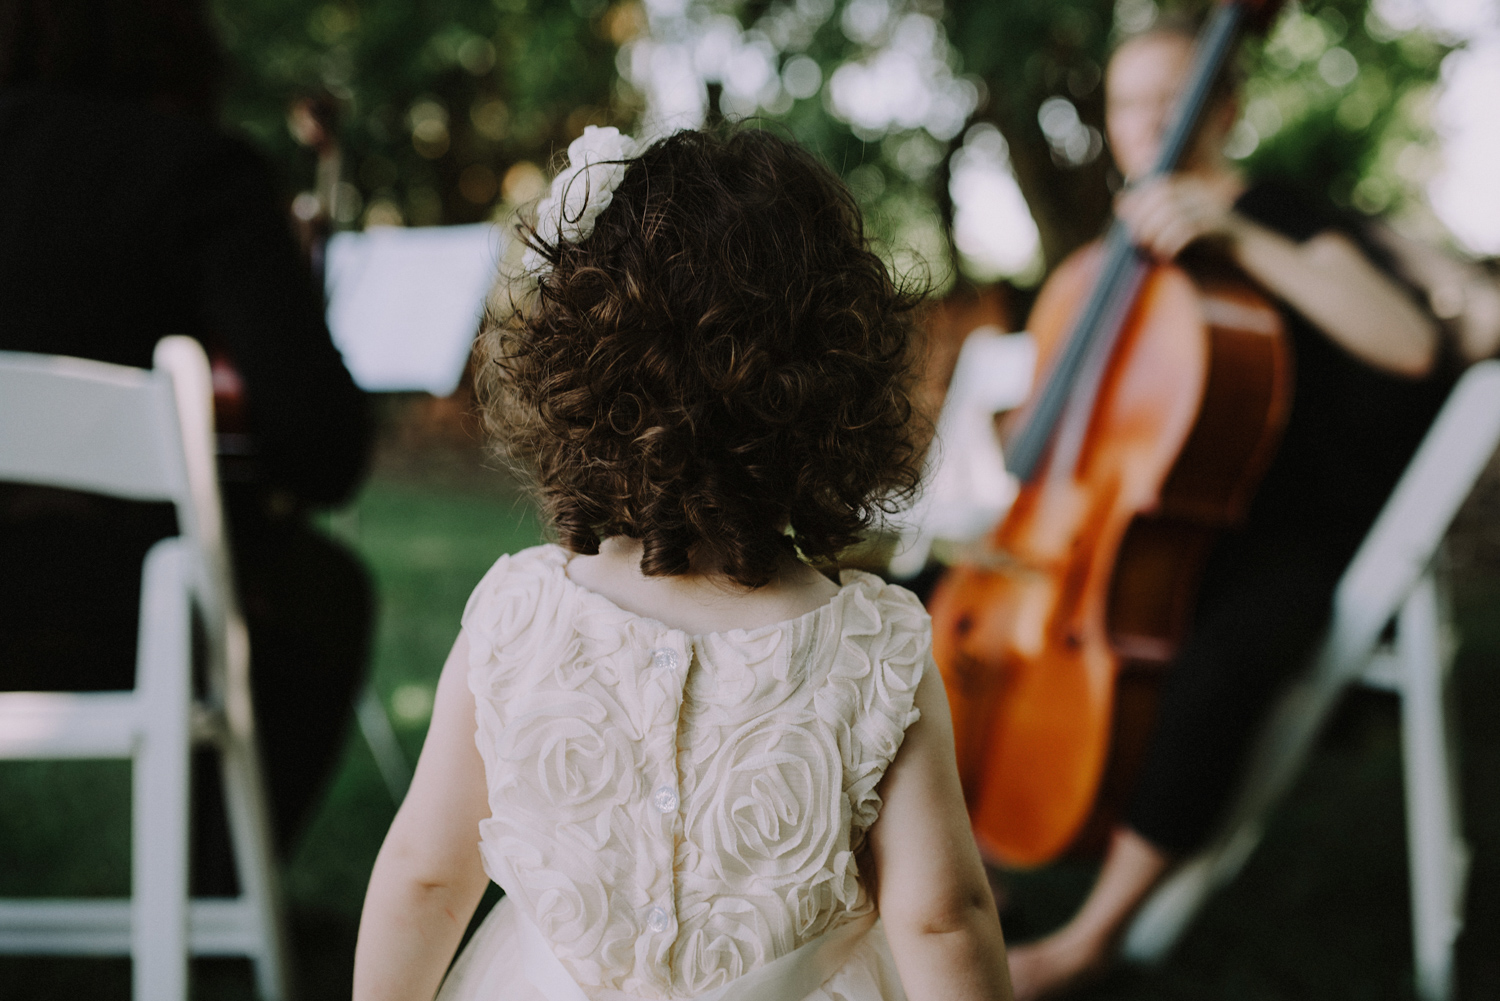 Children at Weddings Photography